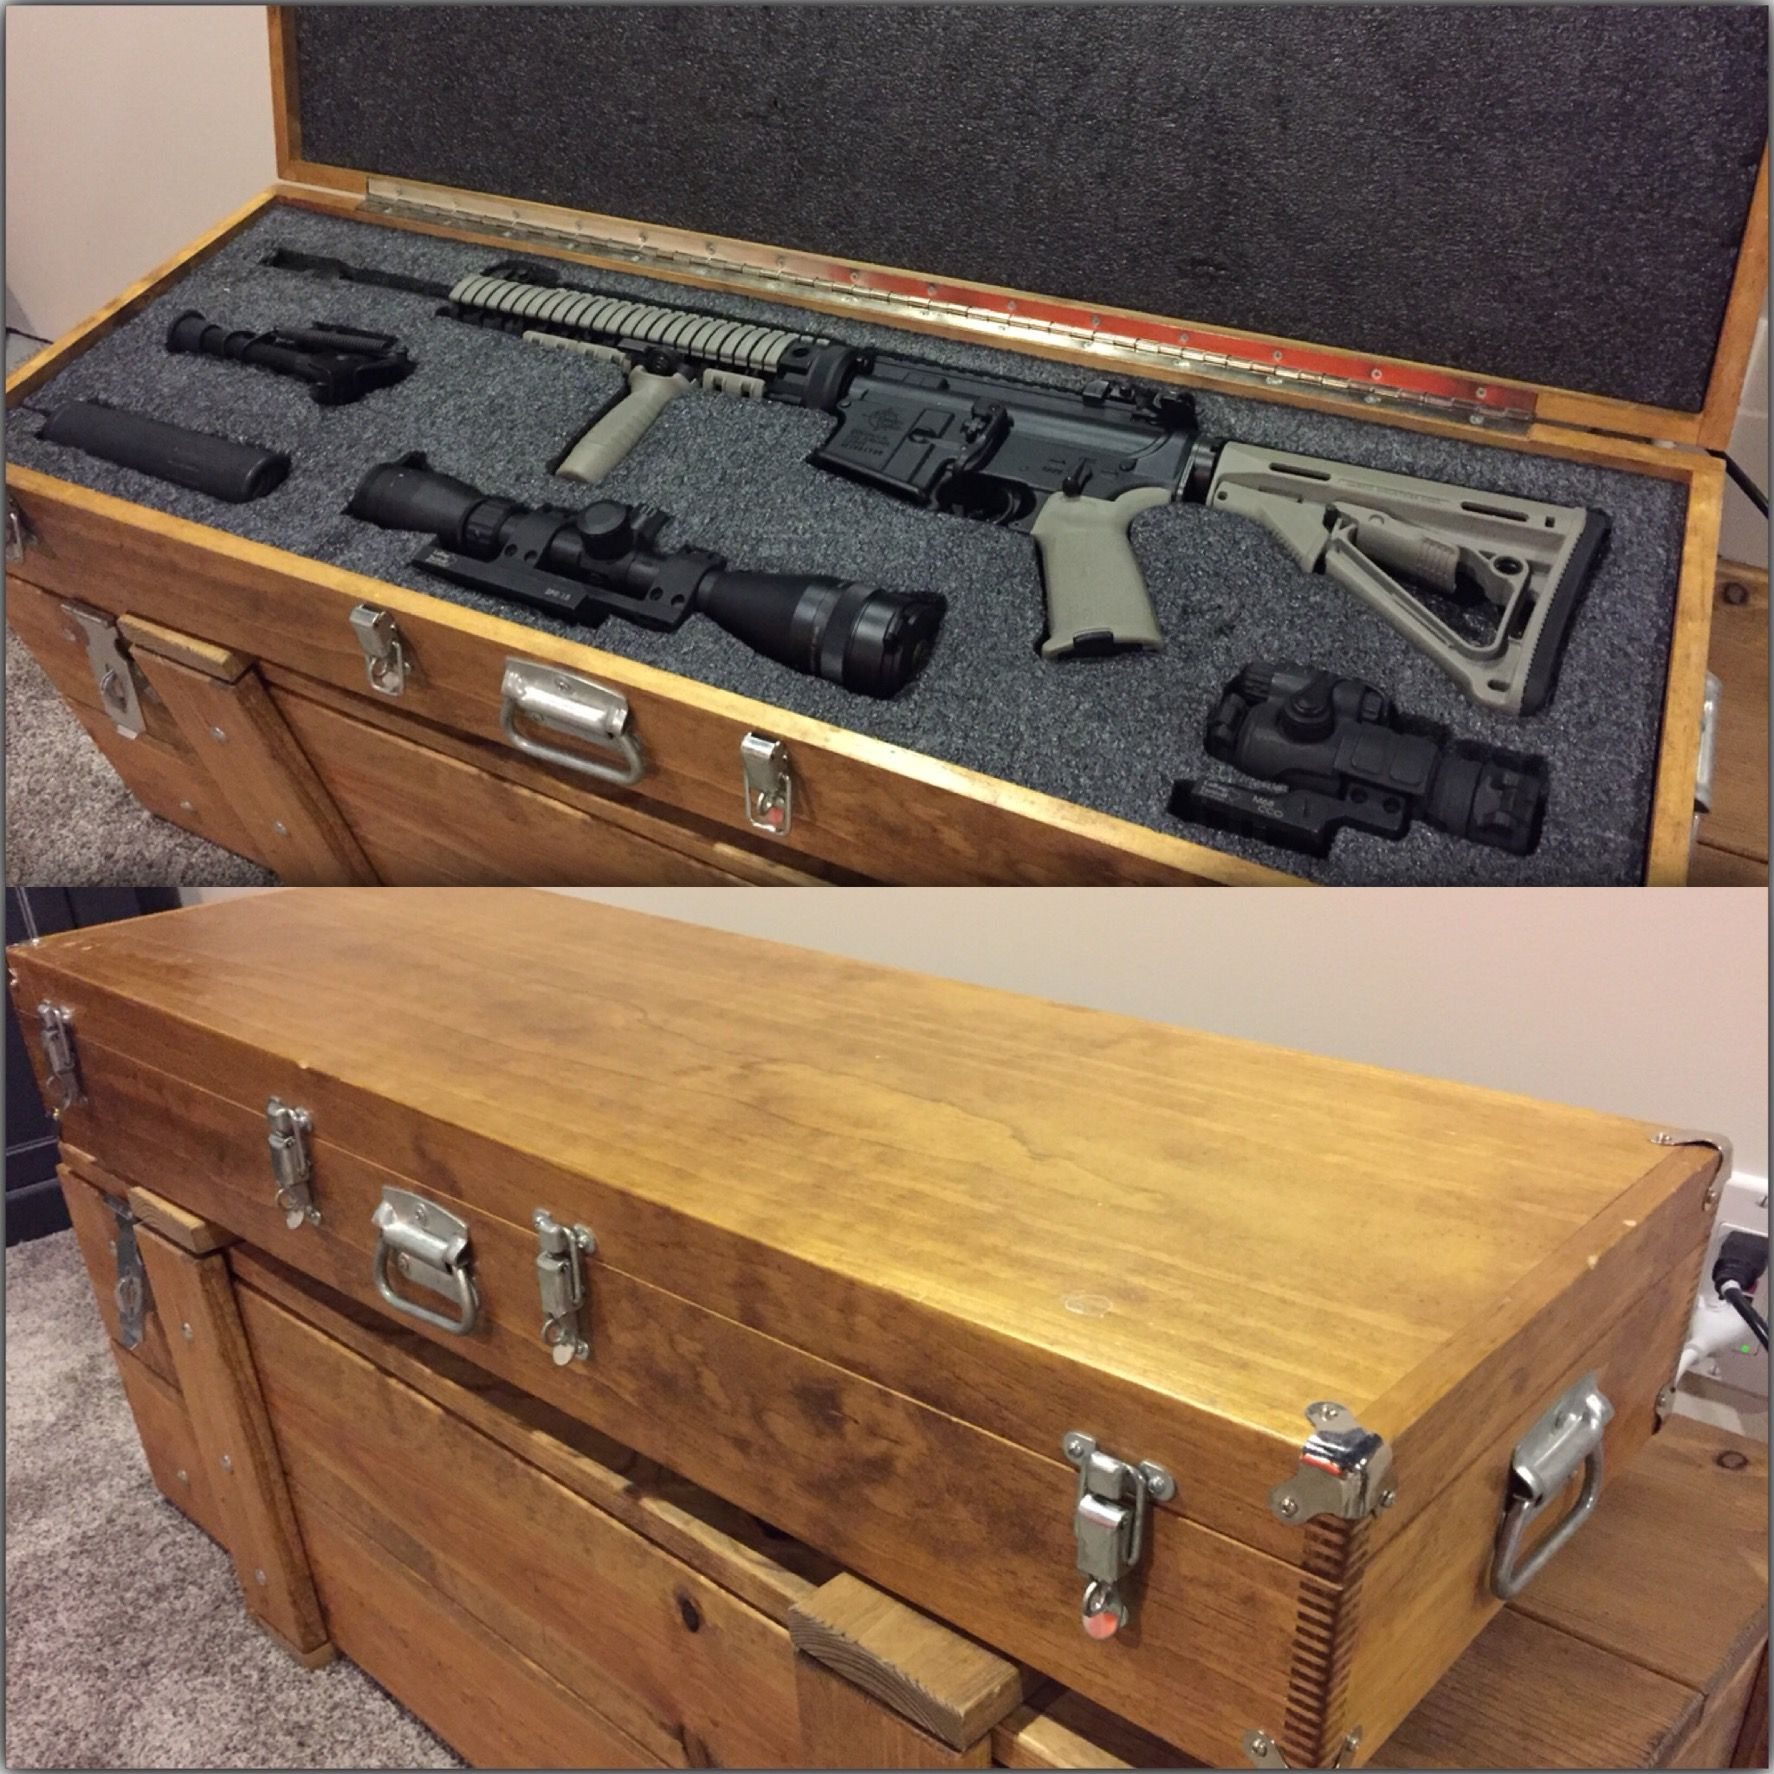 Handmade Wood Gun Case by Gladman Designs Inc | CustomMade.com